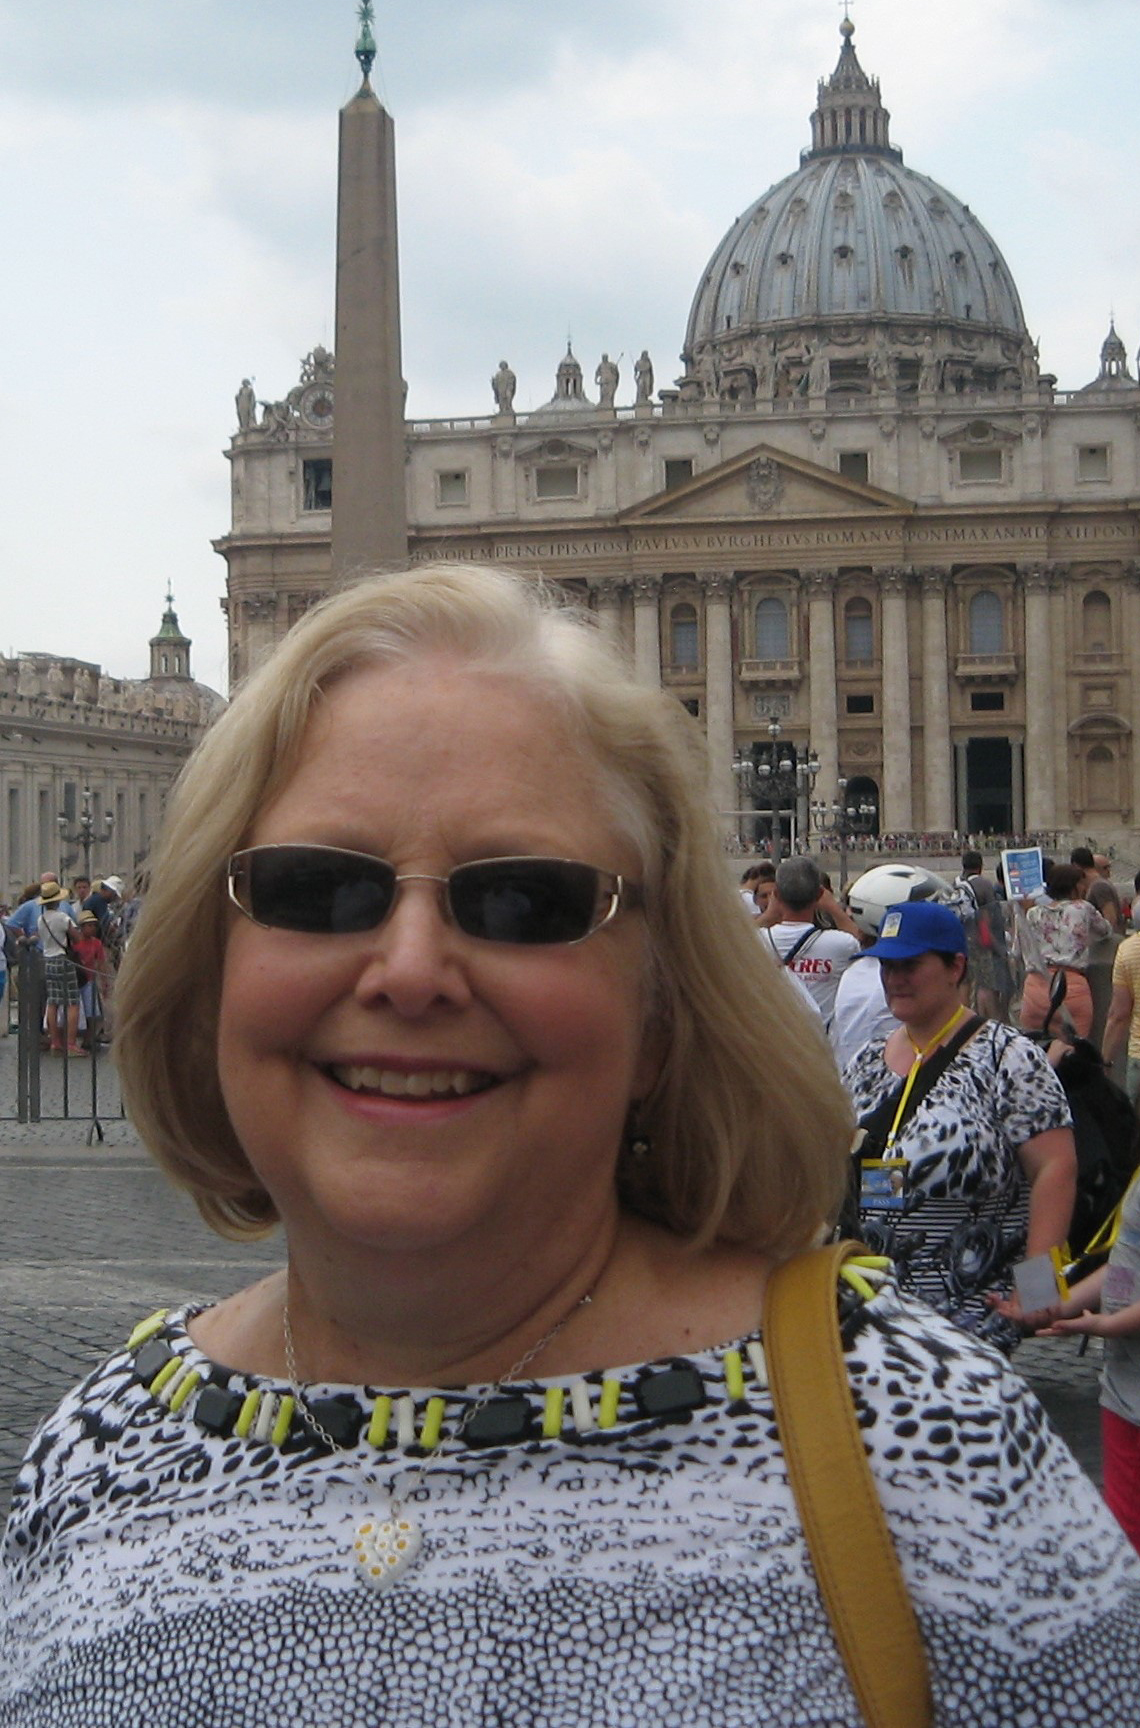 Teri Aitchison at Saint Peter's Square, Rome.